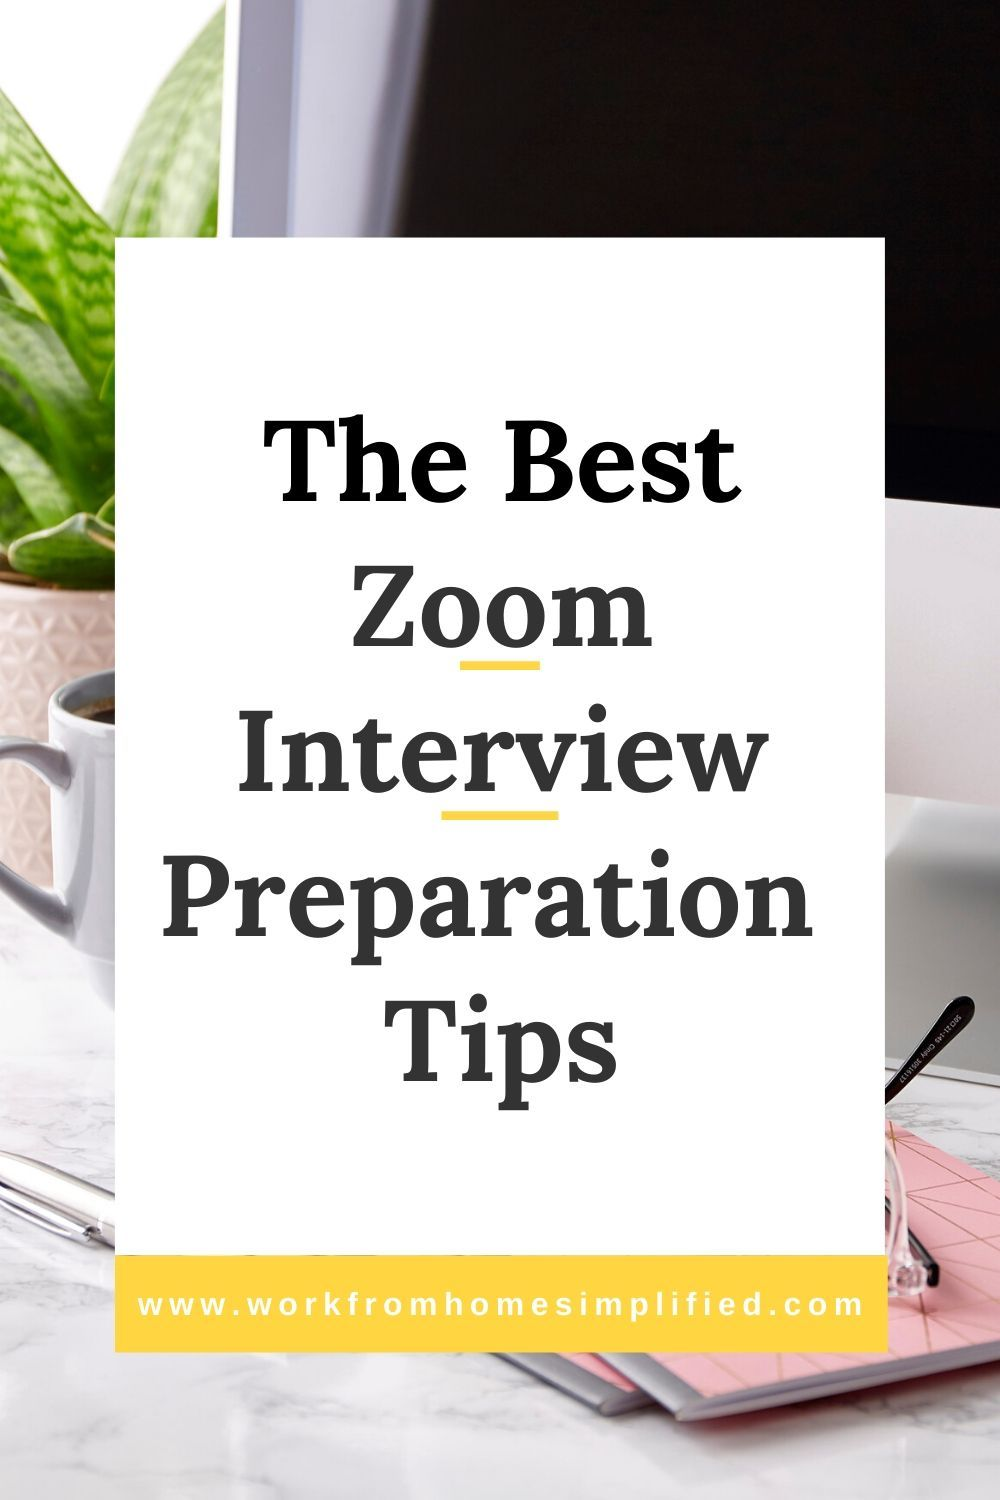 5 tips for a great zoom or skype interview with images